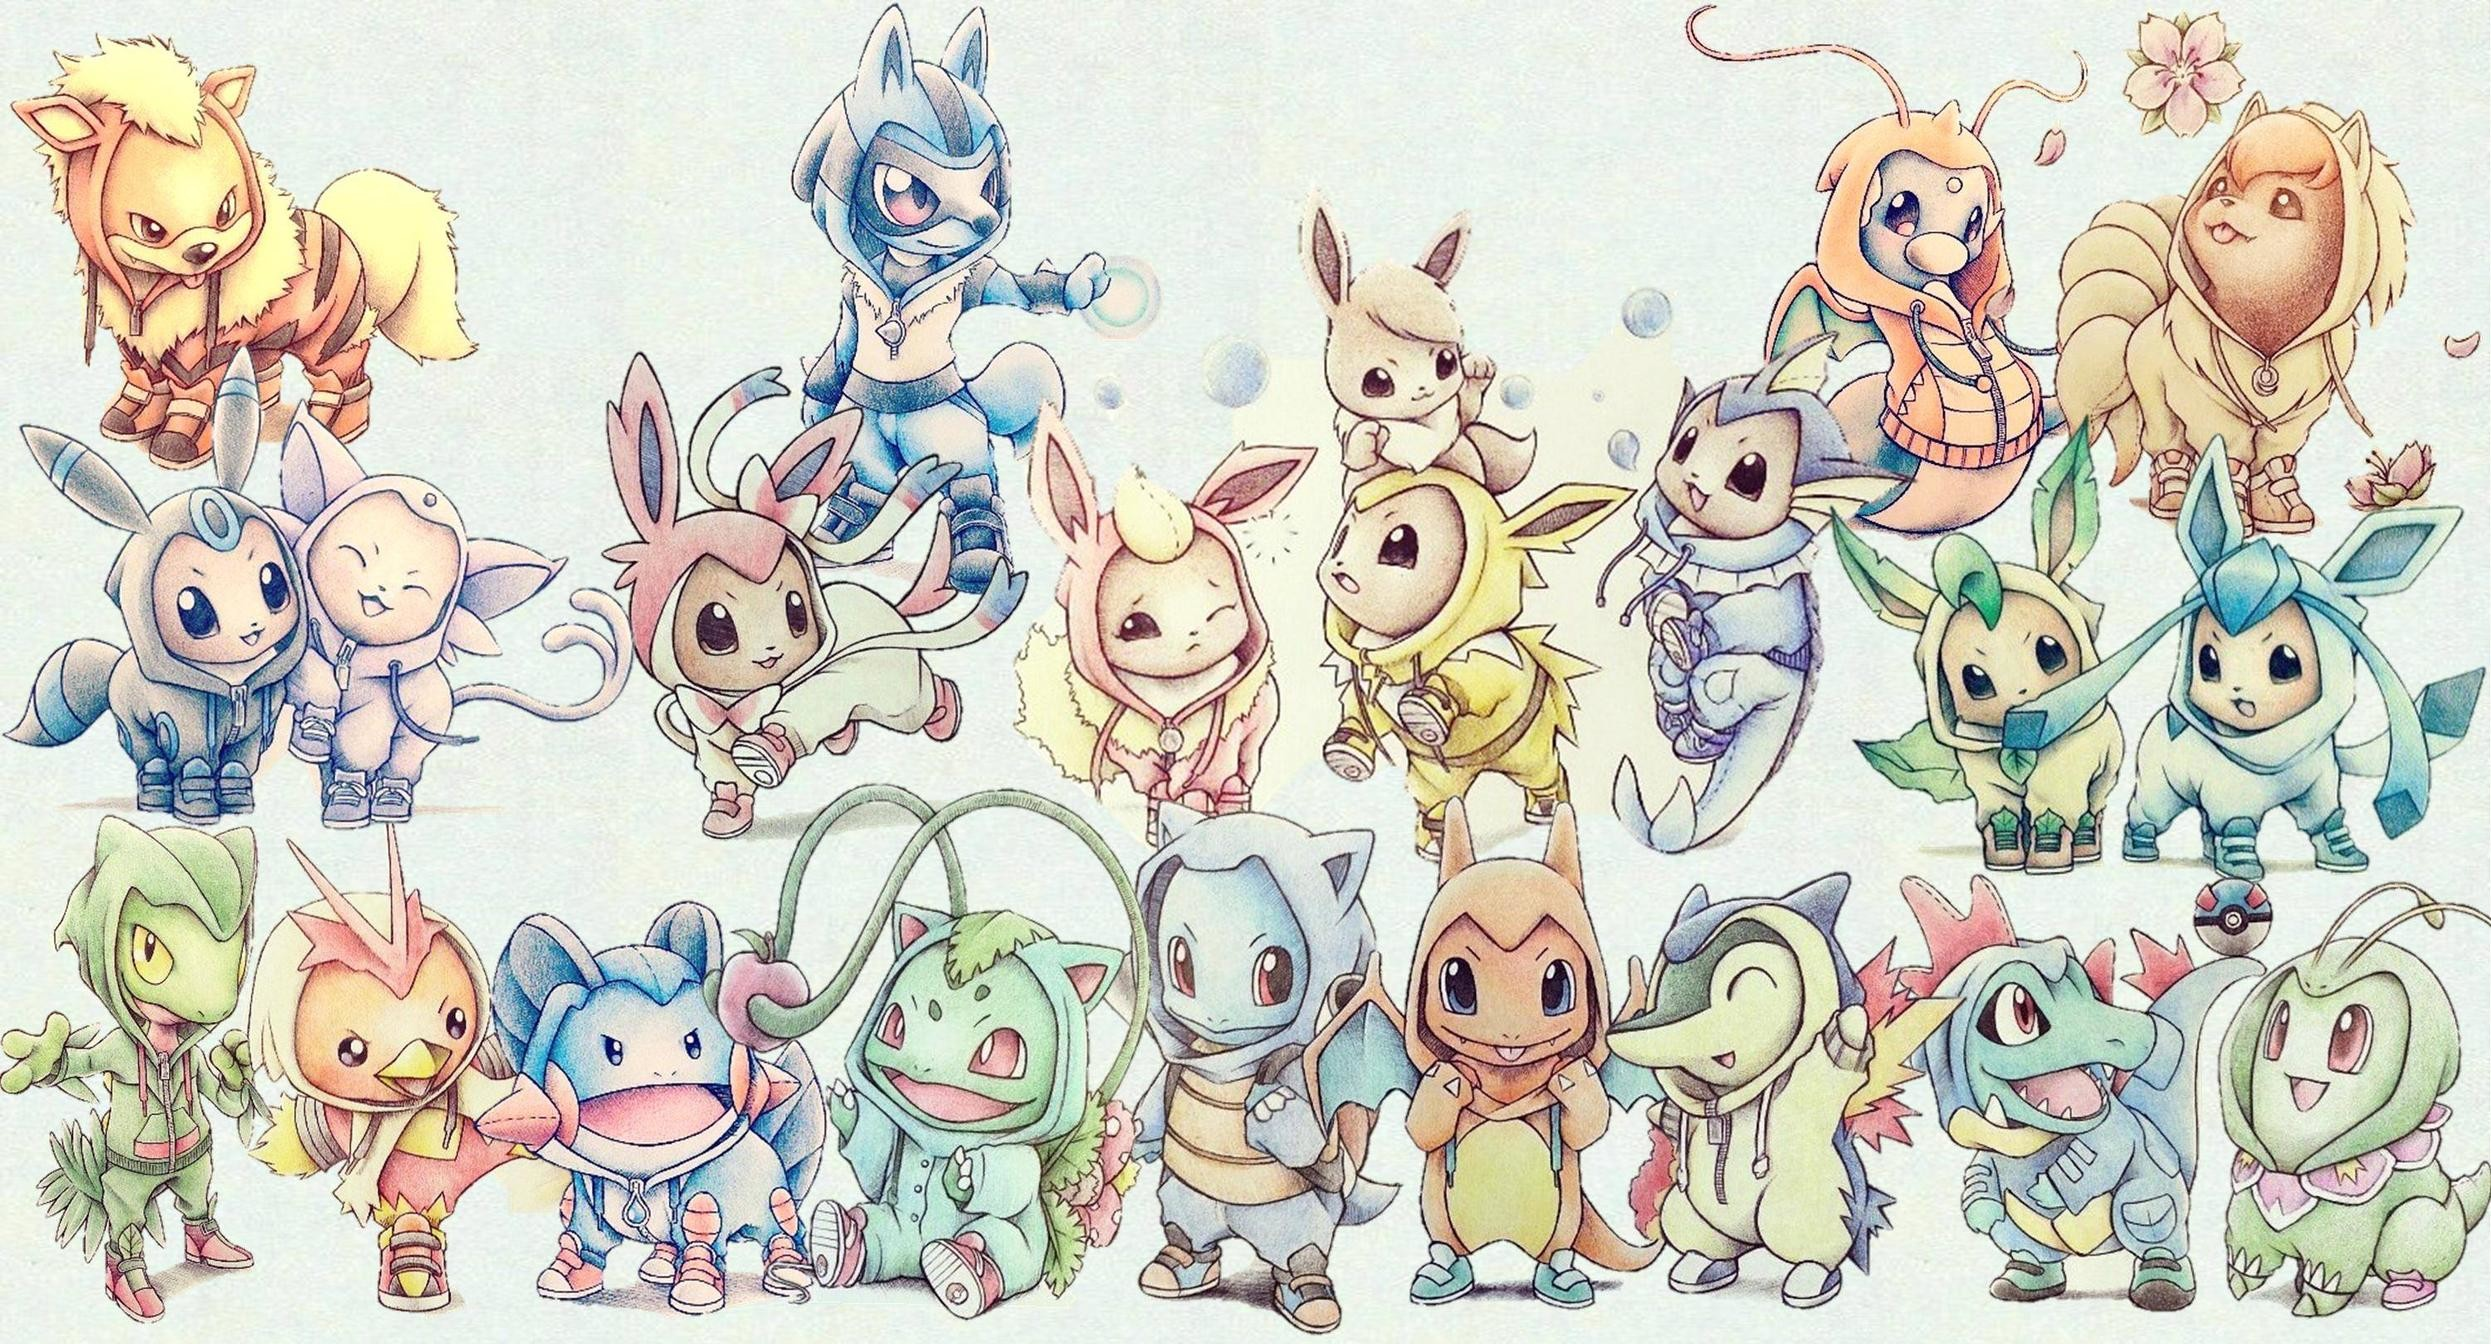 Res: 2491x1344, Cute Pokemon Wallpapers Widescreen